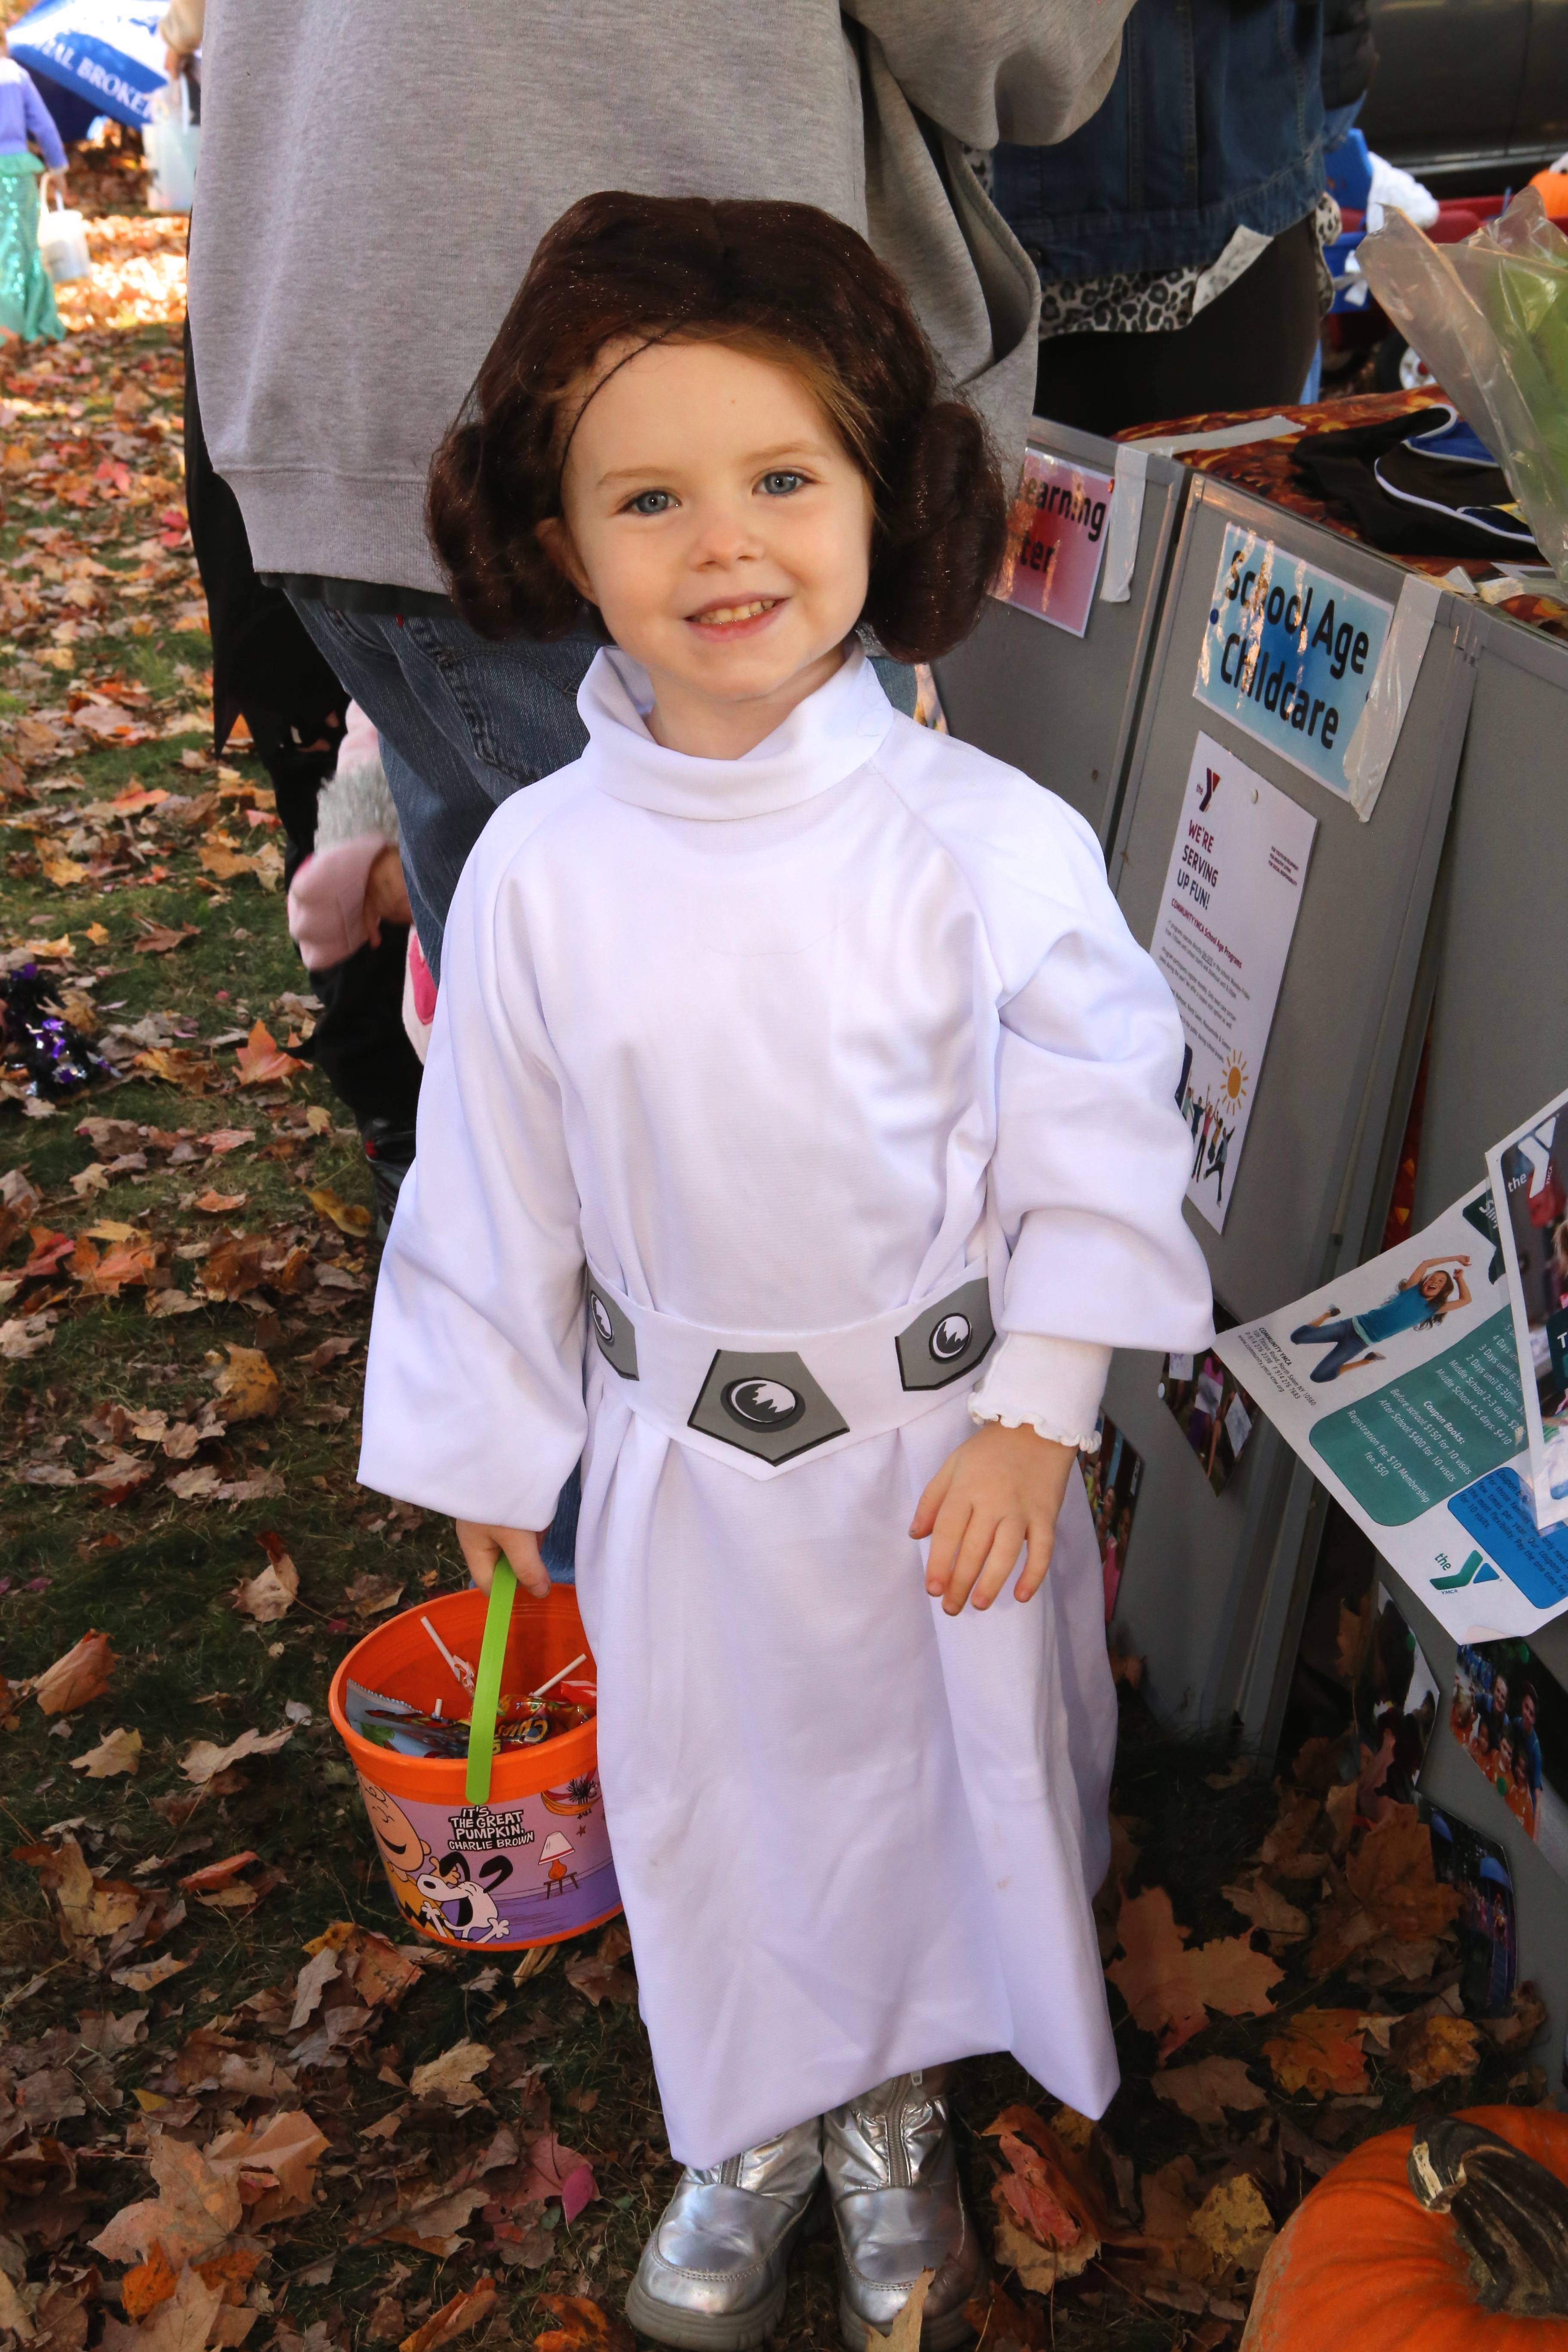 Somers Ny Halloween Parade 2020 Halloween Comes to Somers | TAPinto